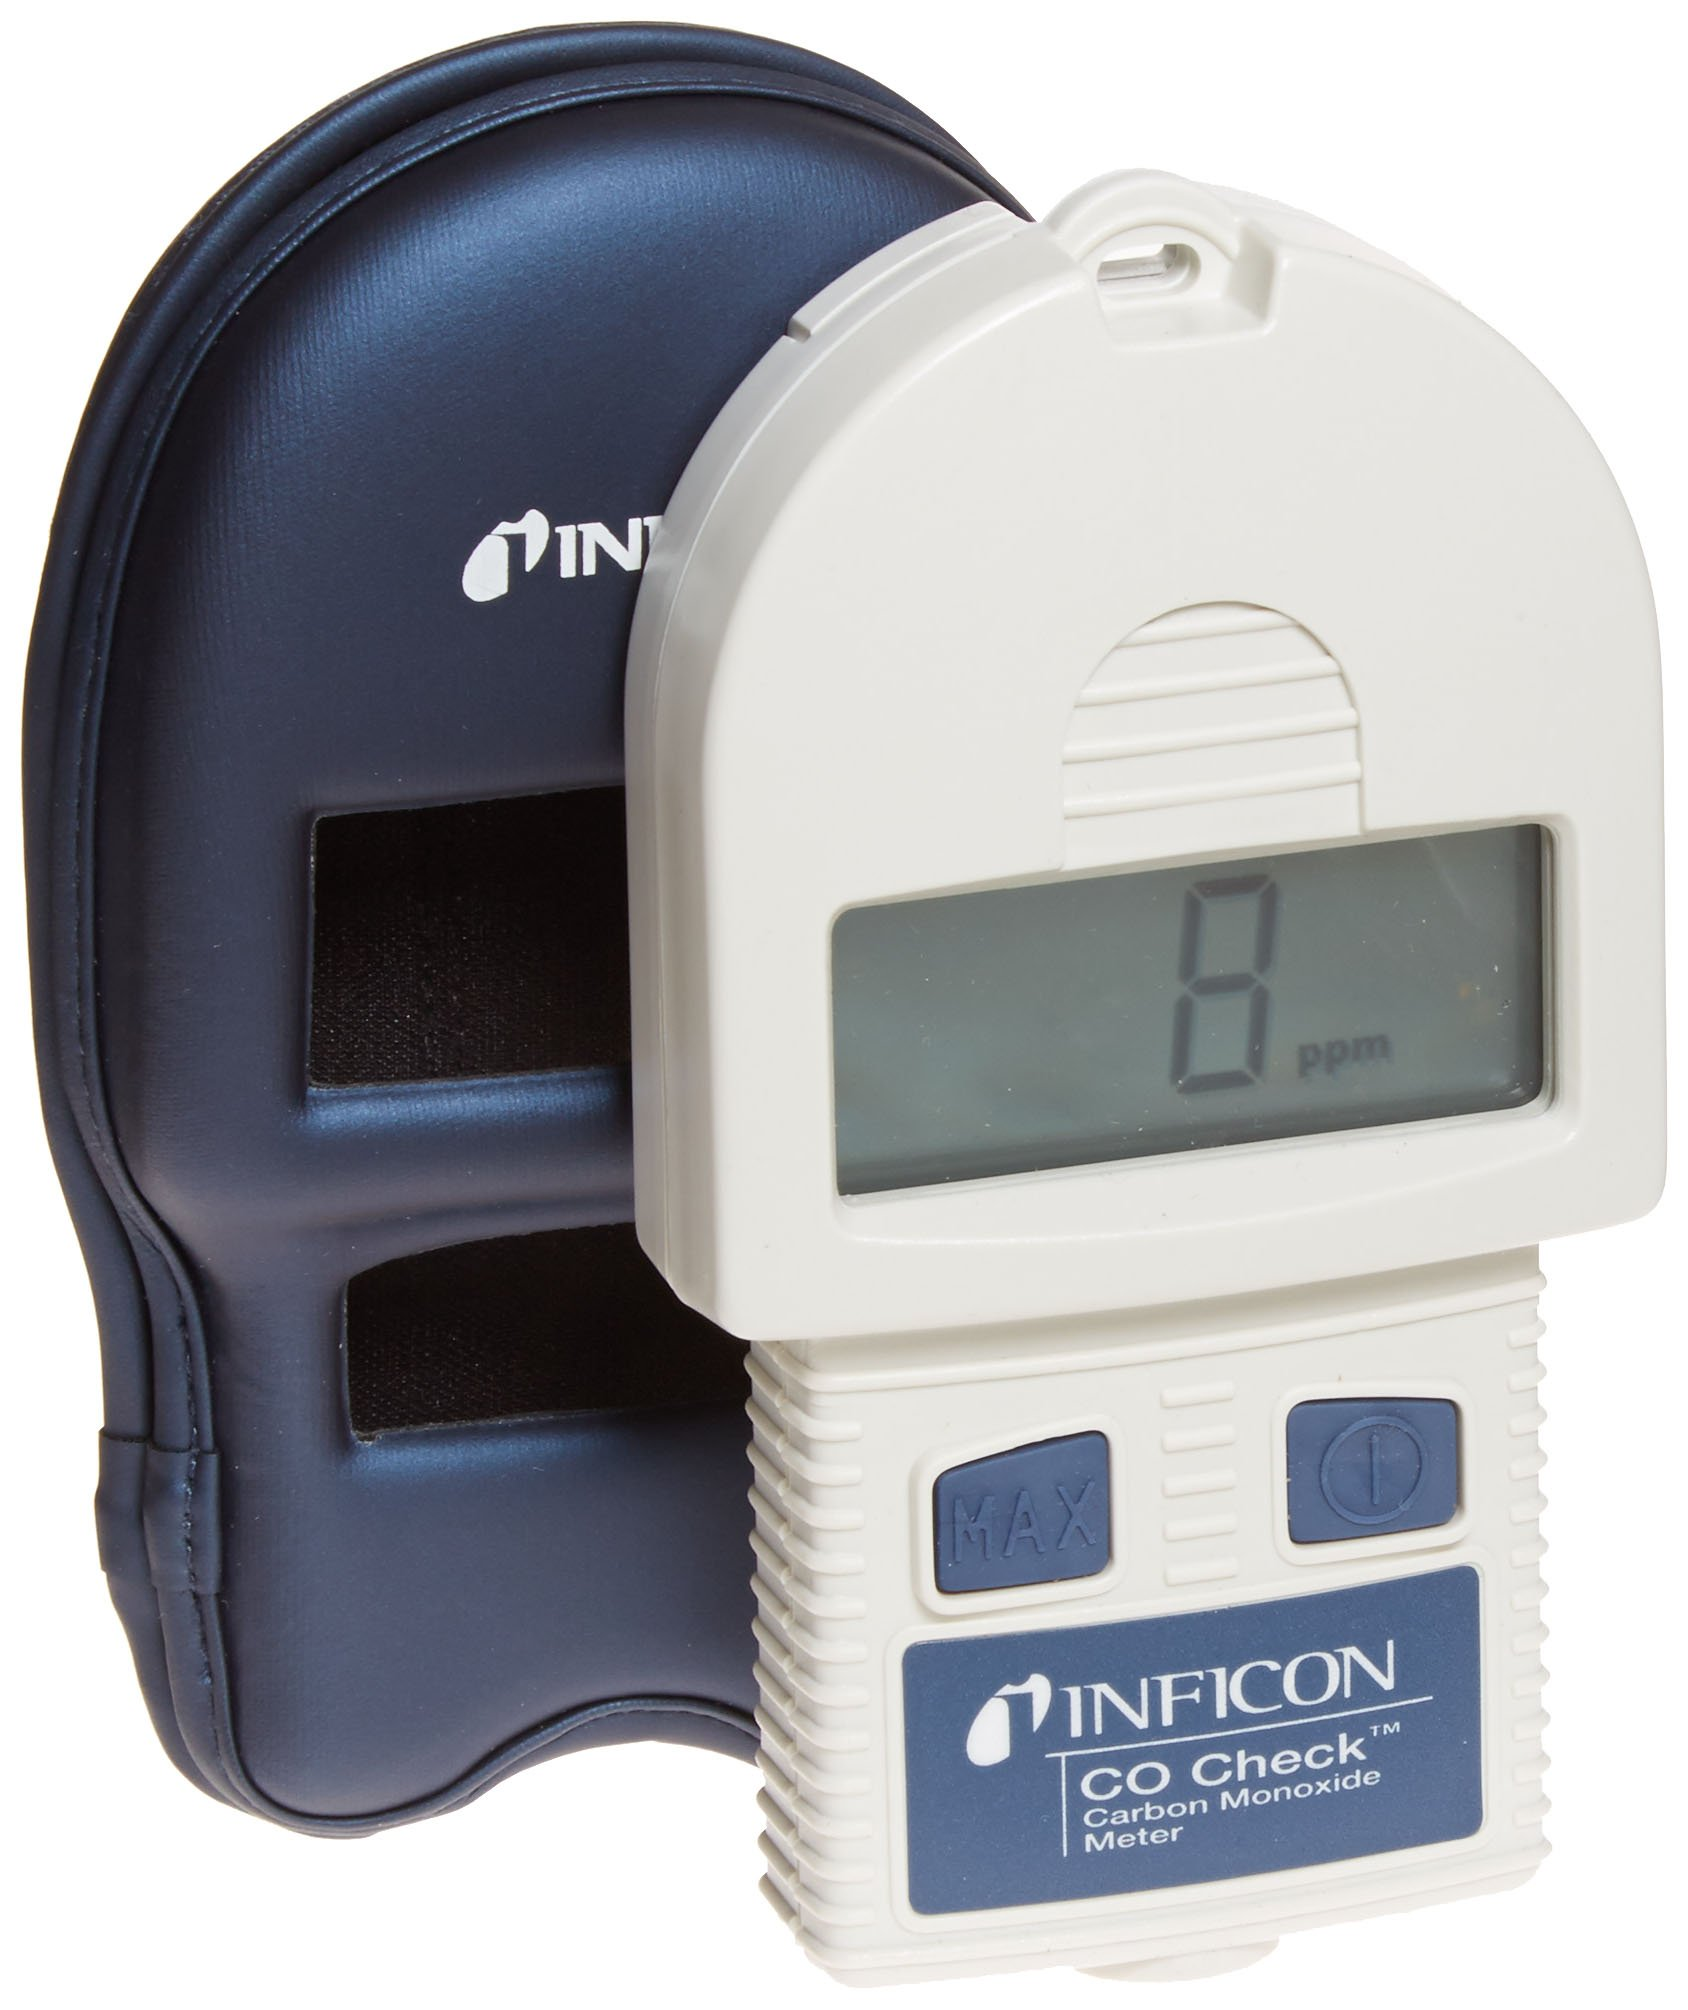 INFICON 715-202-G1 CO Check Carbon Monoxide Meter with Holster Case, 1/999ppm Range, 9V